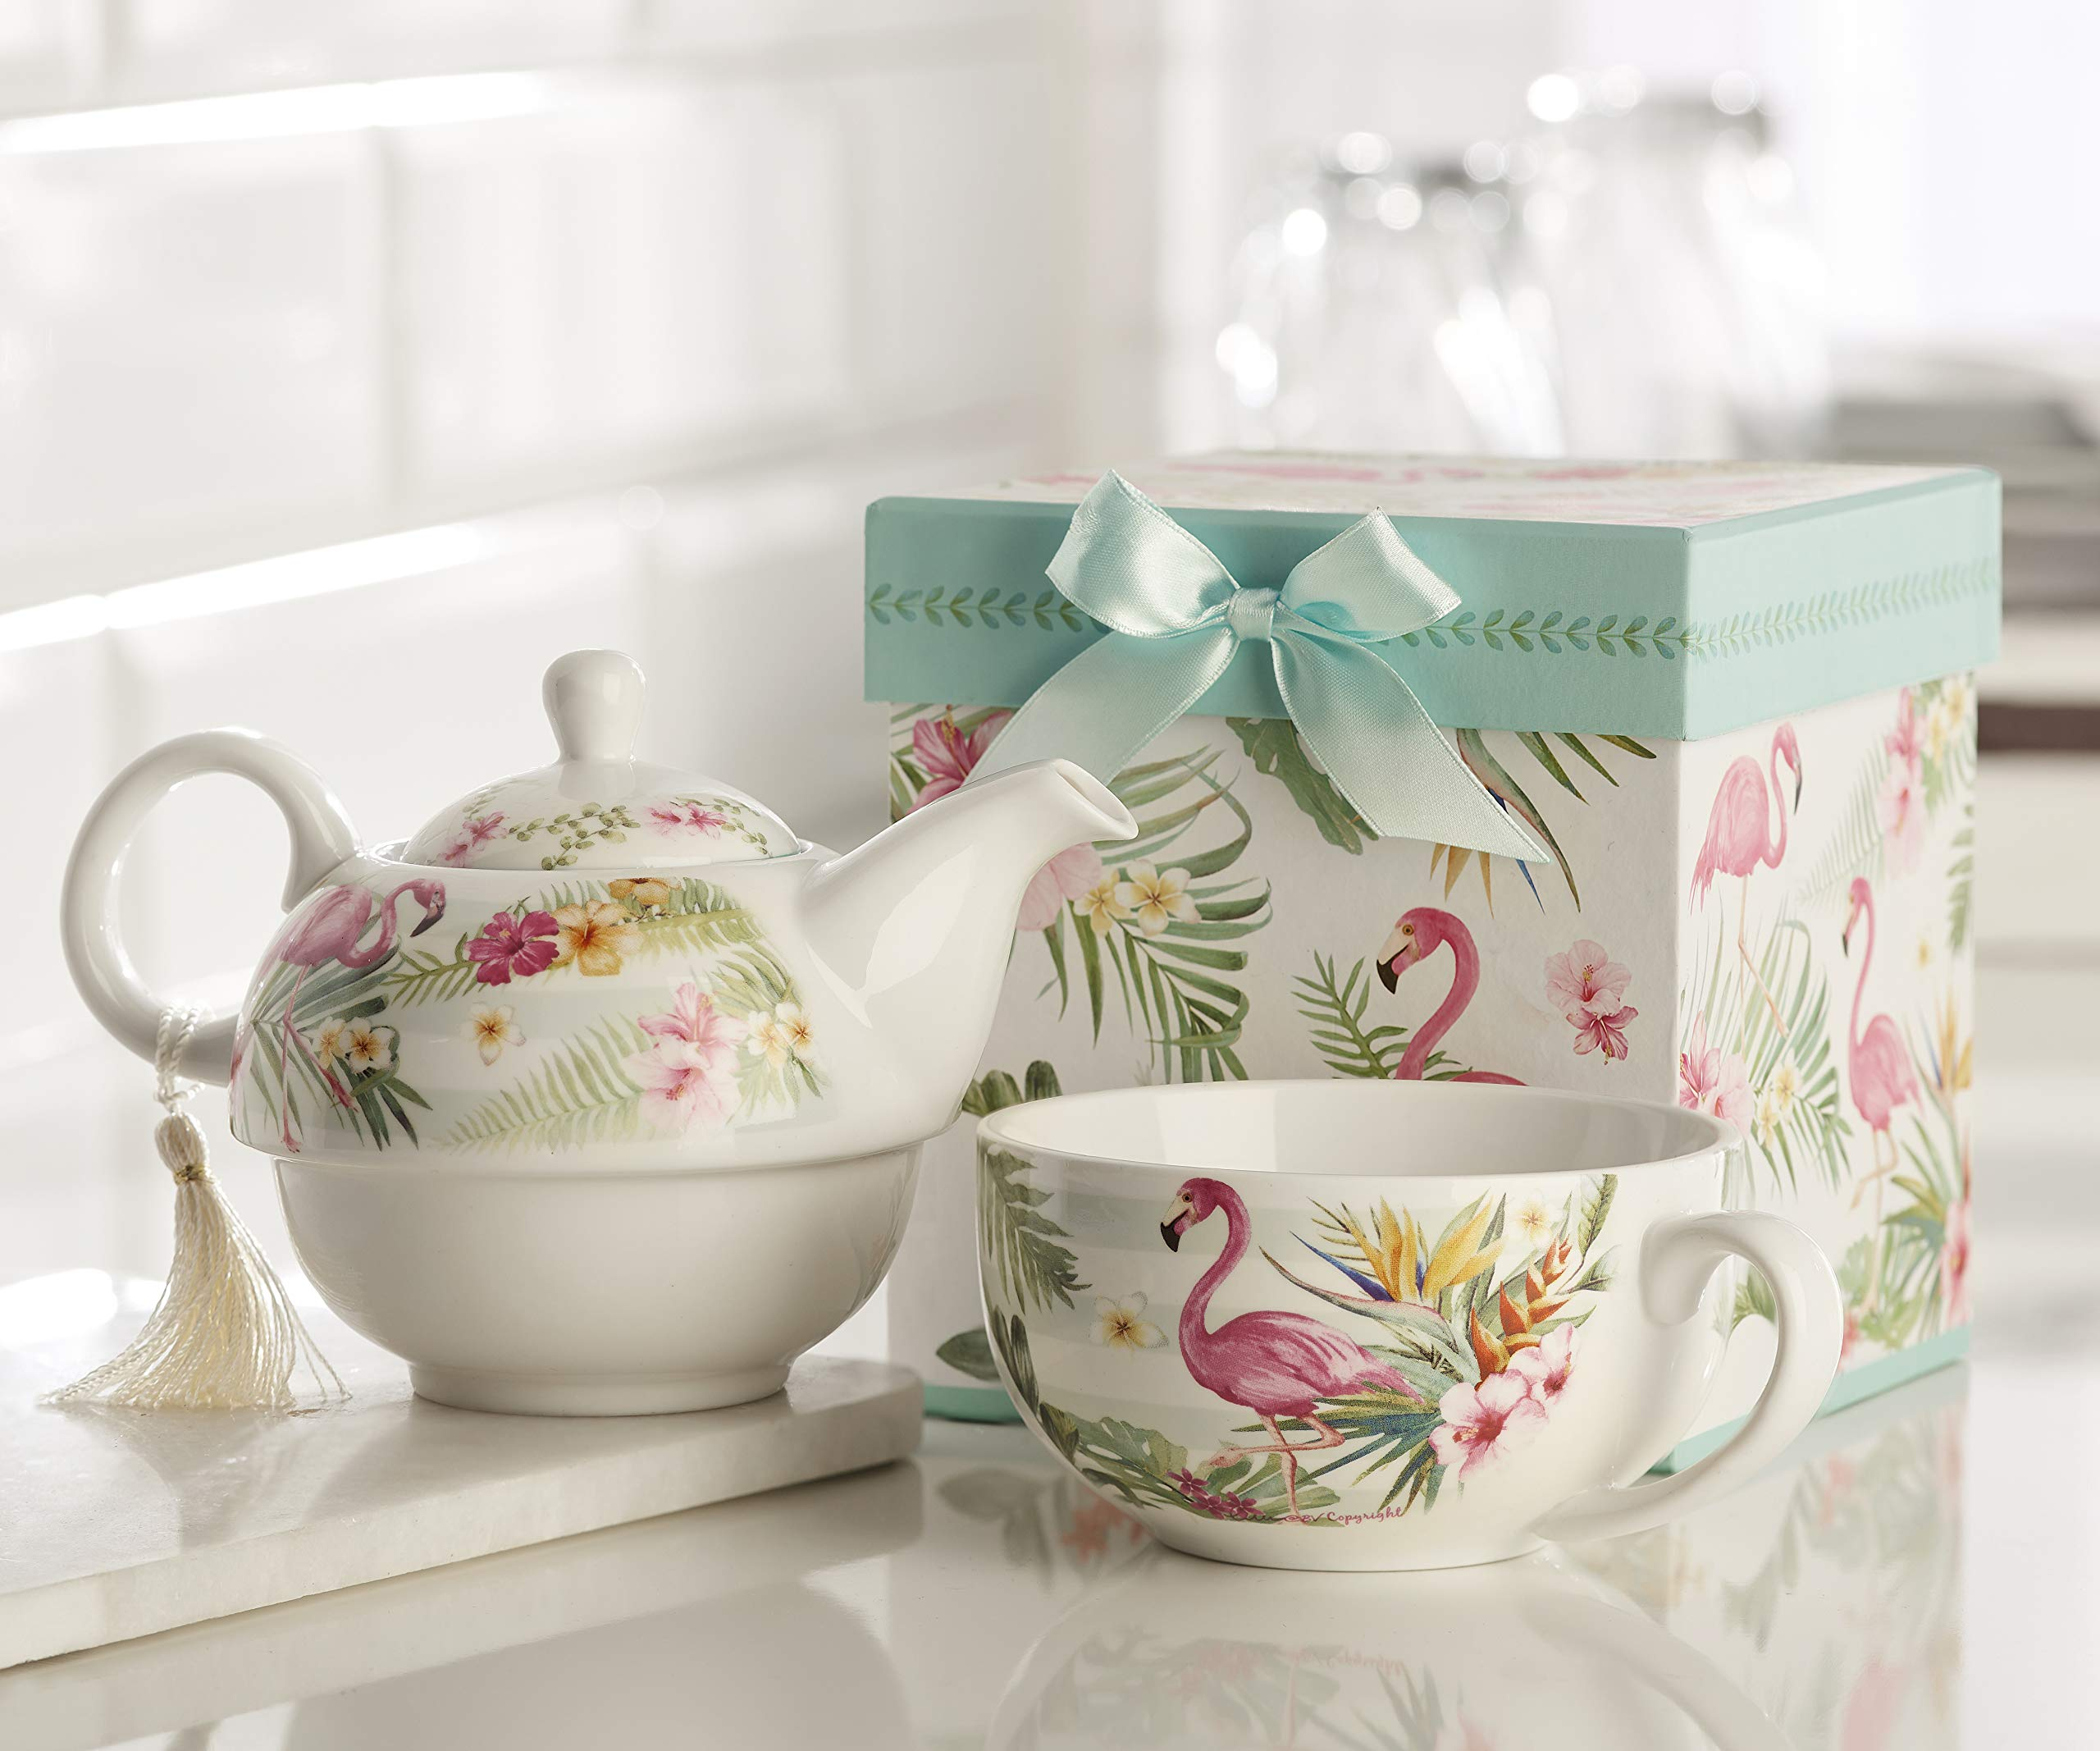 Giftcraft Bone China Tea Set for One in Gift Box, Flamingo Design by Giftcraft (Image #3)